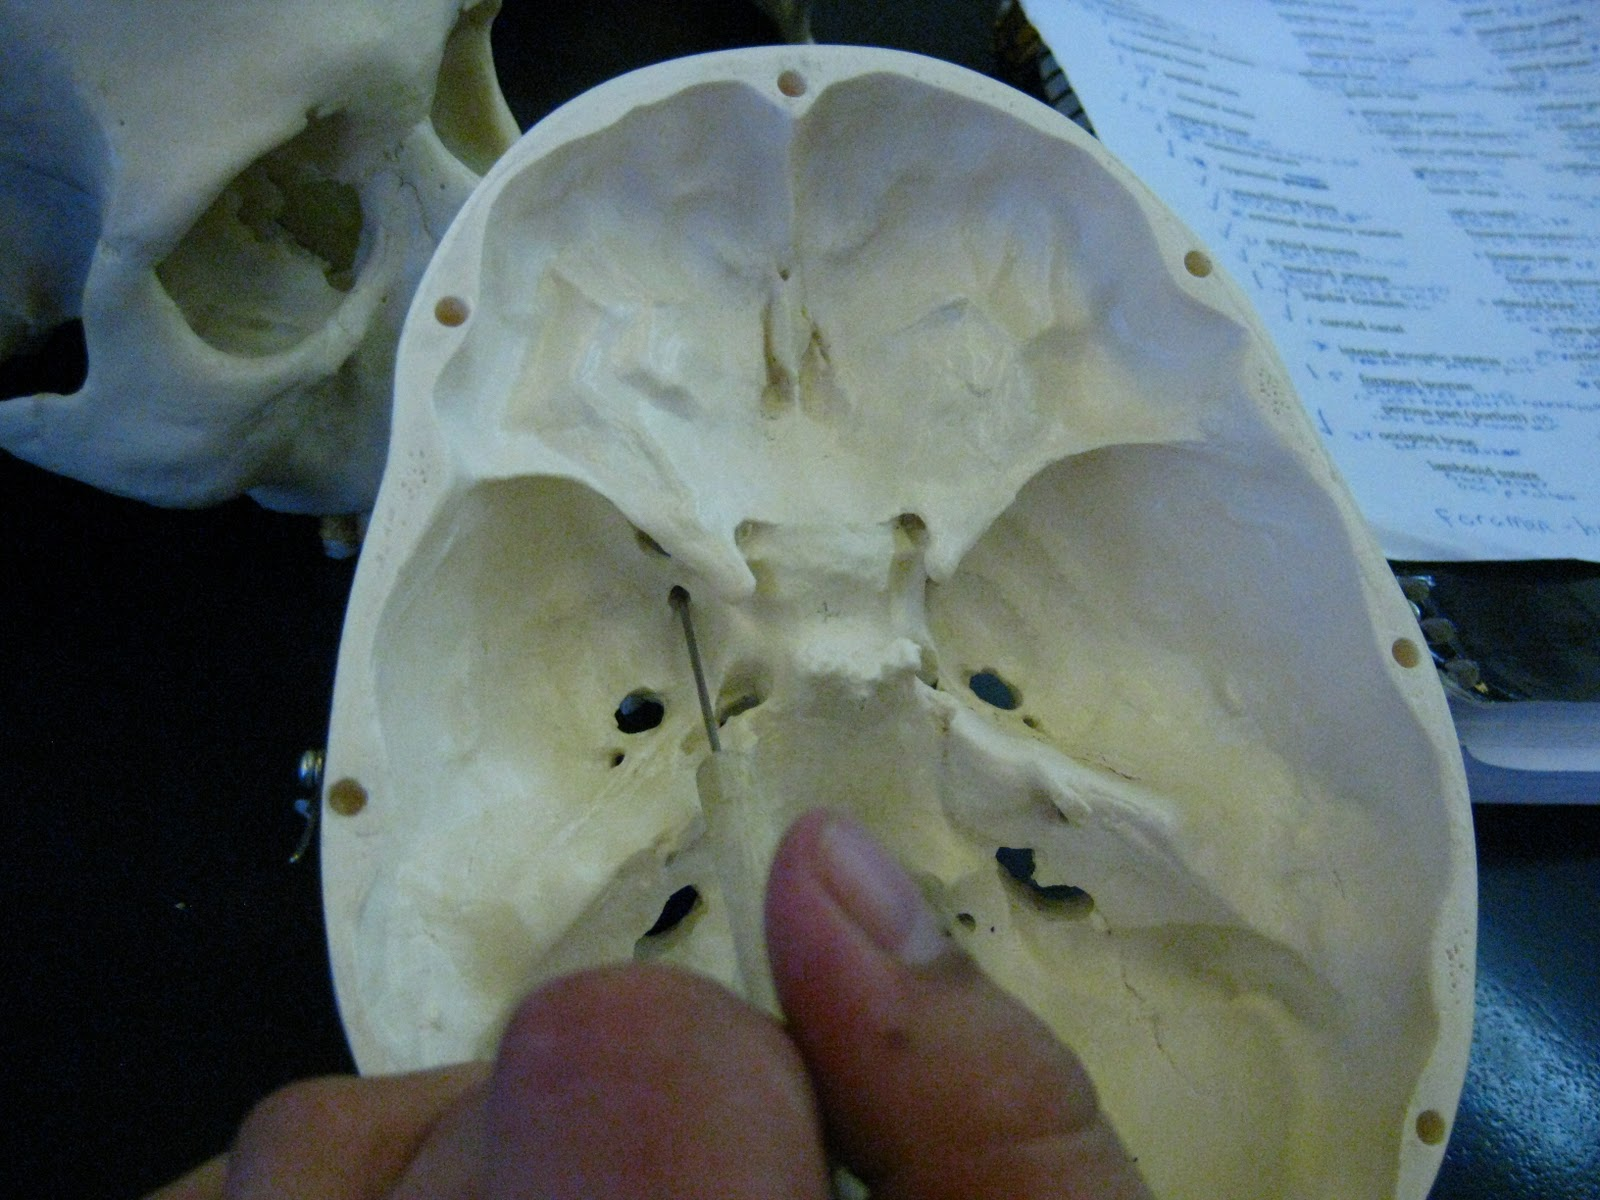 Boned Human Skull Foramen Rotundum Of Sphenoid Bone